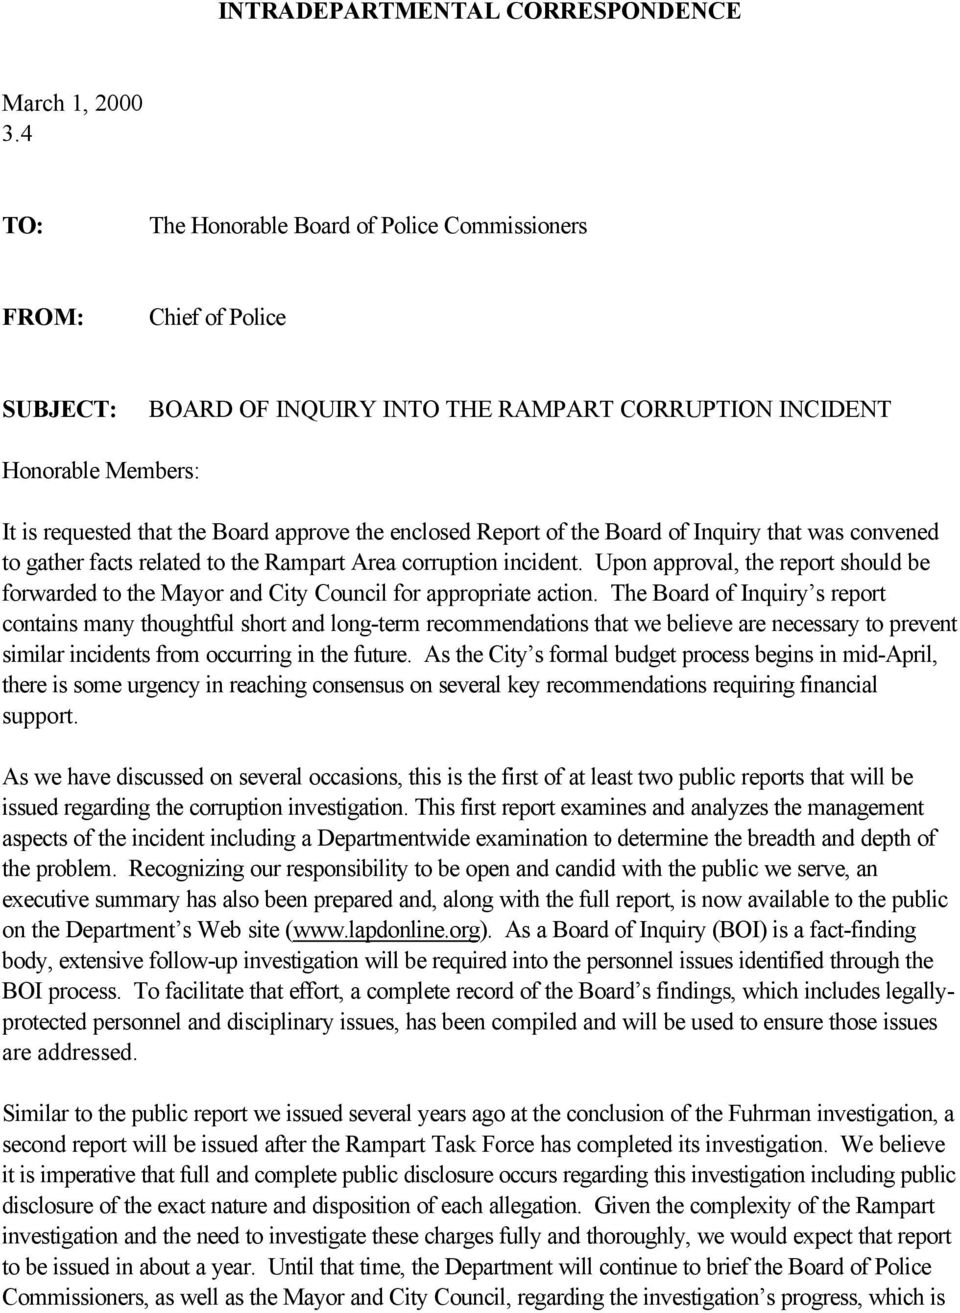 enclosed Report of the Board of Inquiry that was convened to gather facts related to the Rampart Area corruption incident.